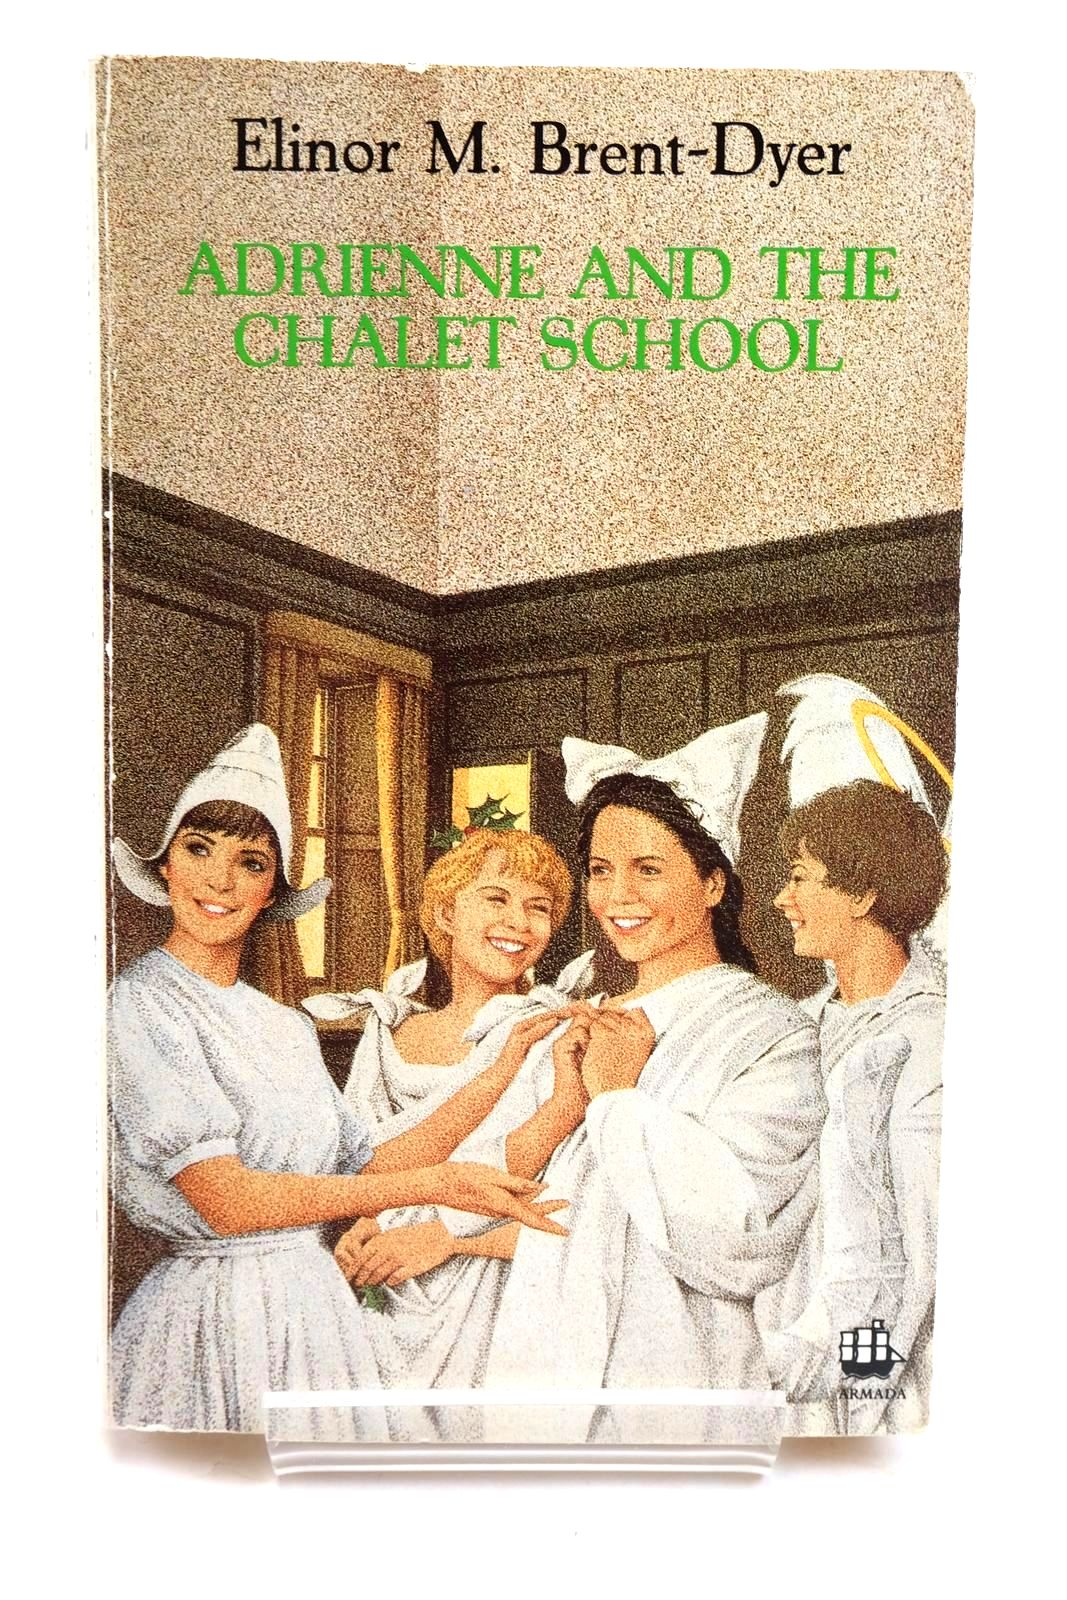 Photo of ADRIENNE AND THE CHALET SCHOOL written by Brent-Dyer, Elinor M. published by Armada (STOCK CODE: 1319855)  for sale by Stella & Rose's Books